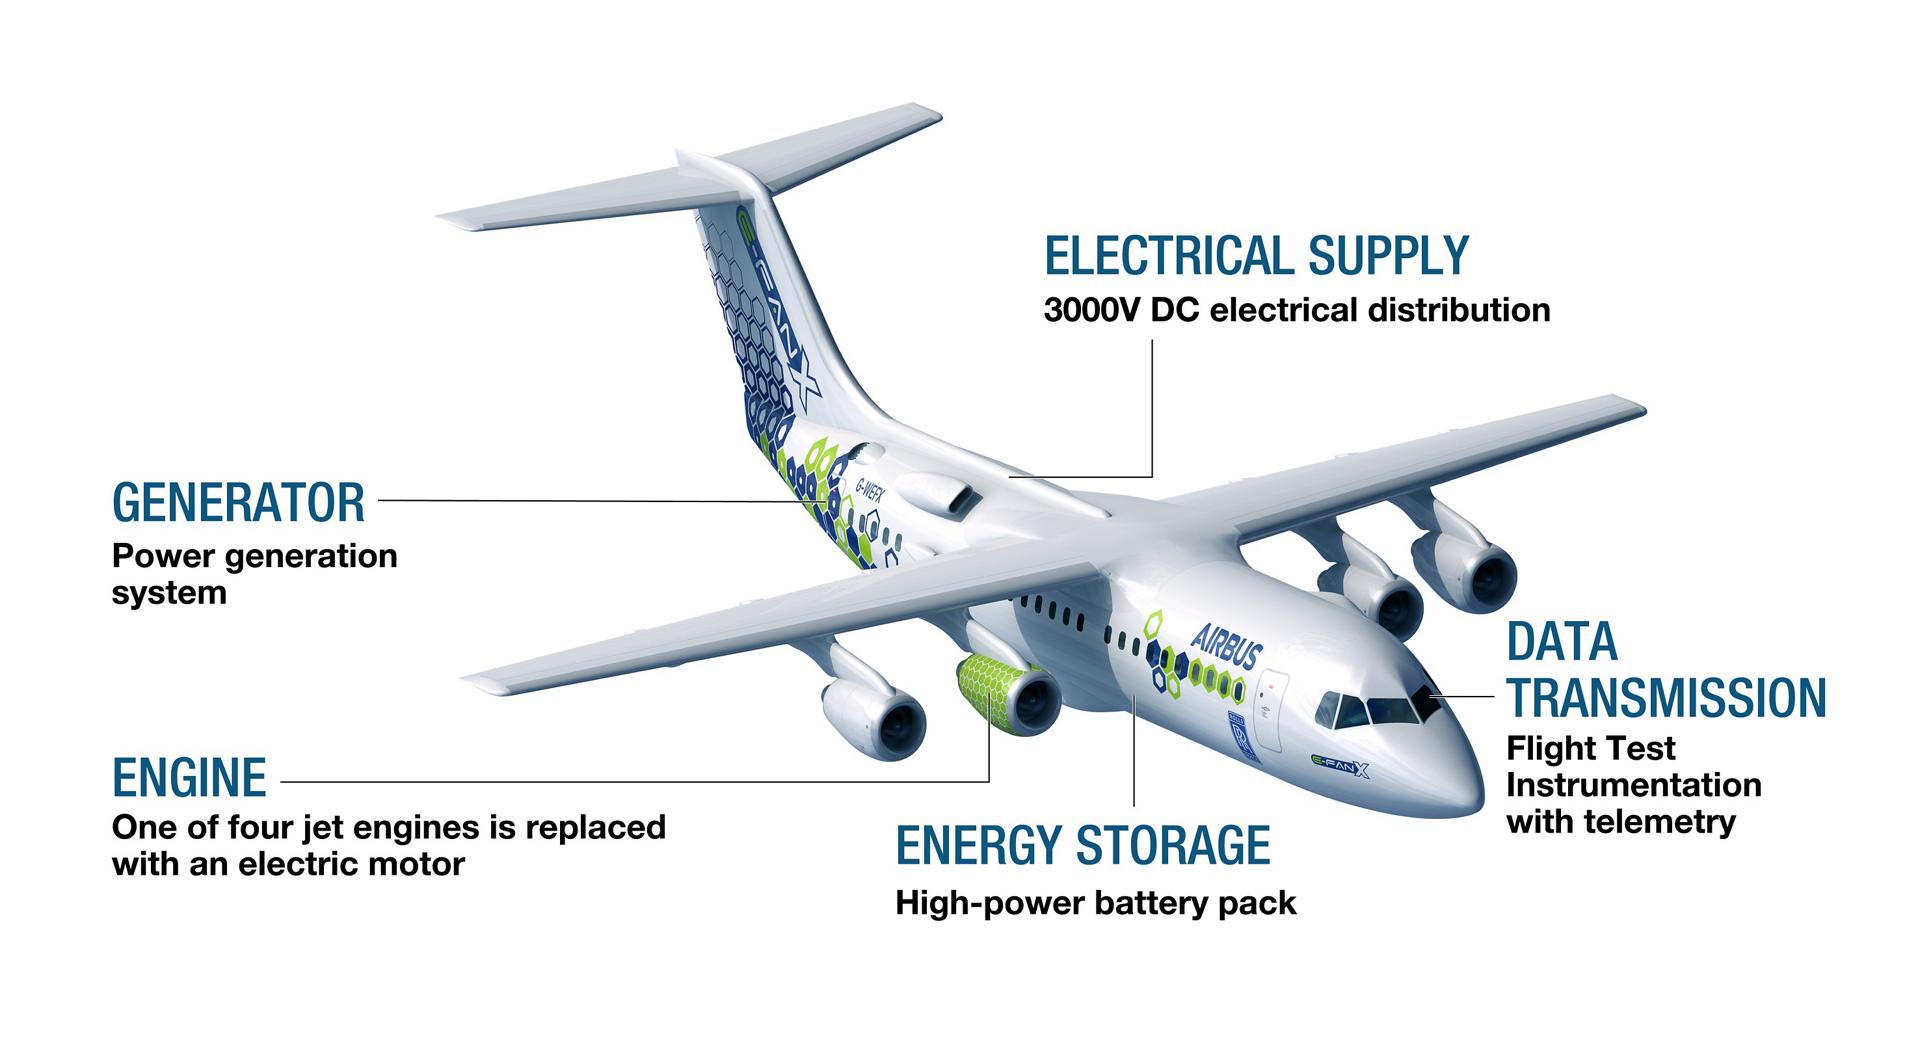 A diagram of Airbus' E-Fan X hybrid-electric aircraft highlighting key systems and functions.